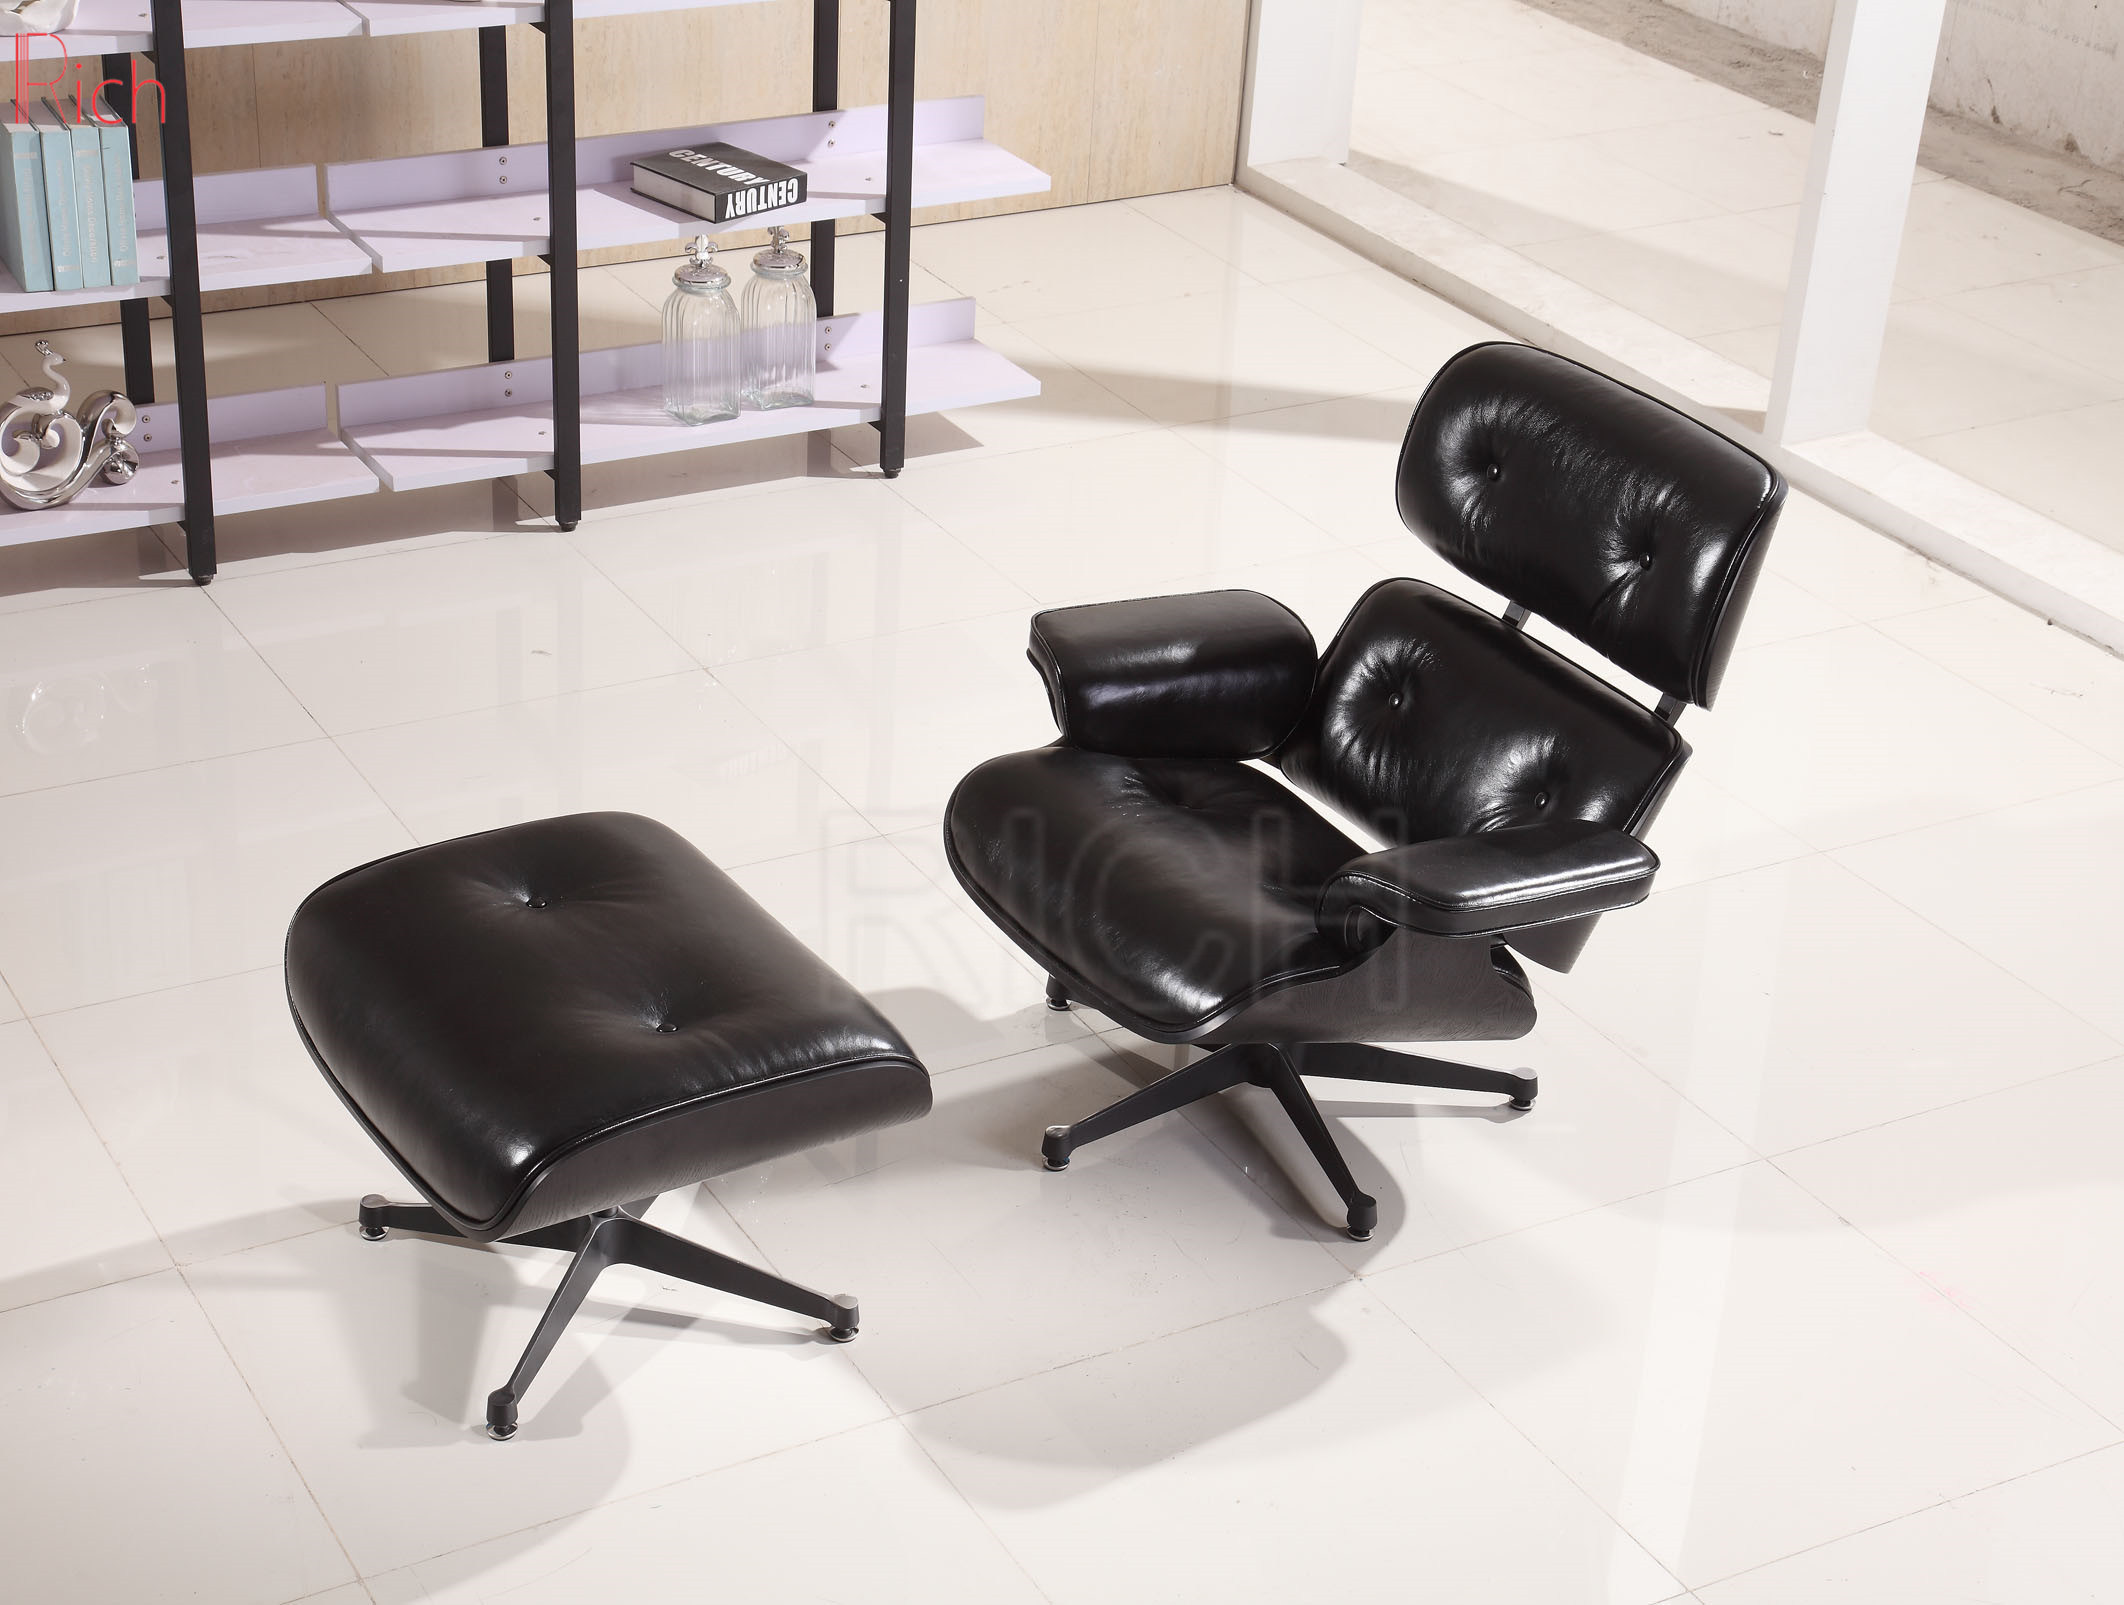 Vitra Lounge Chair Replica [hot item] replica black eames lounge chair with ottoman footstool hotel  living room chair vitra base